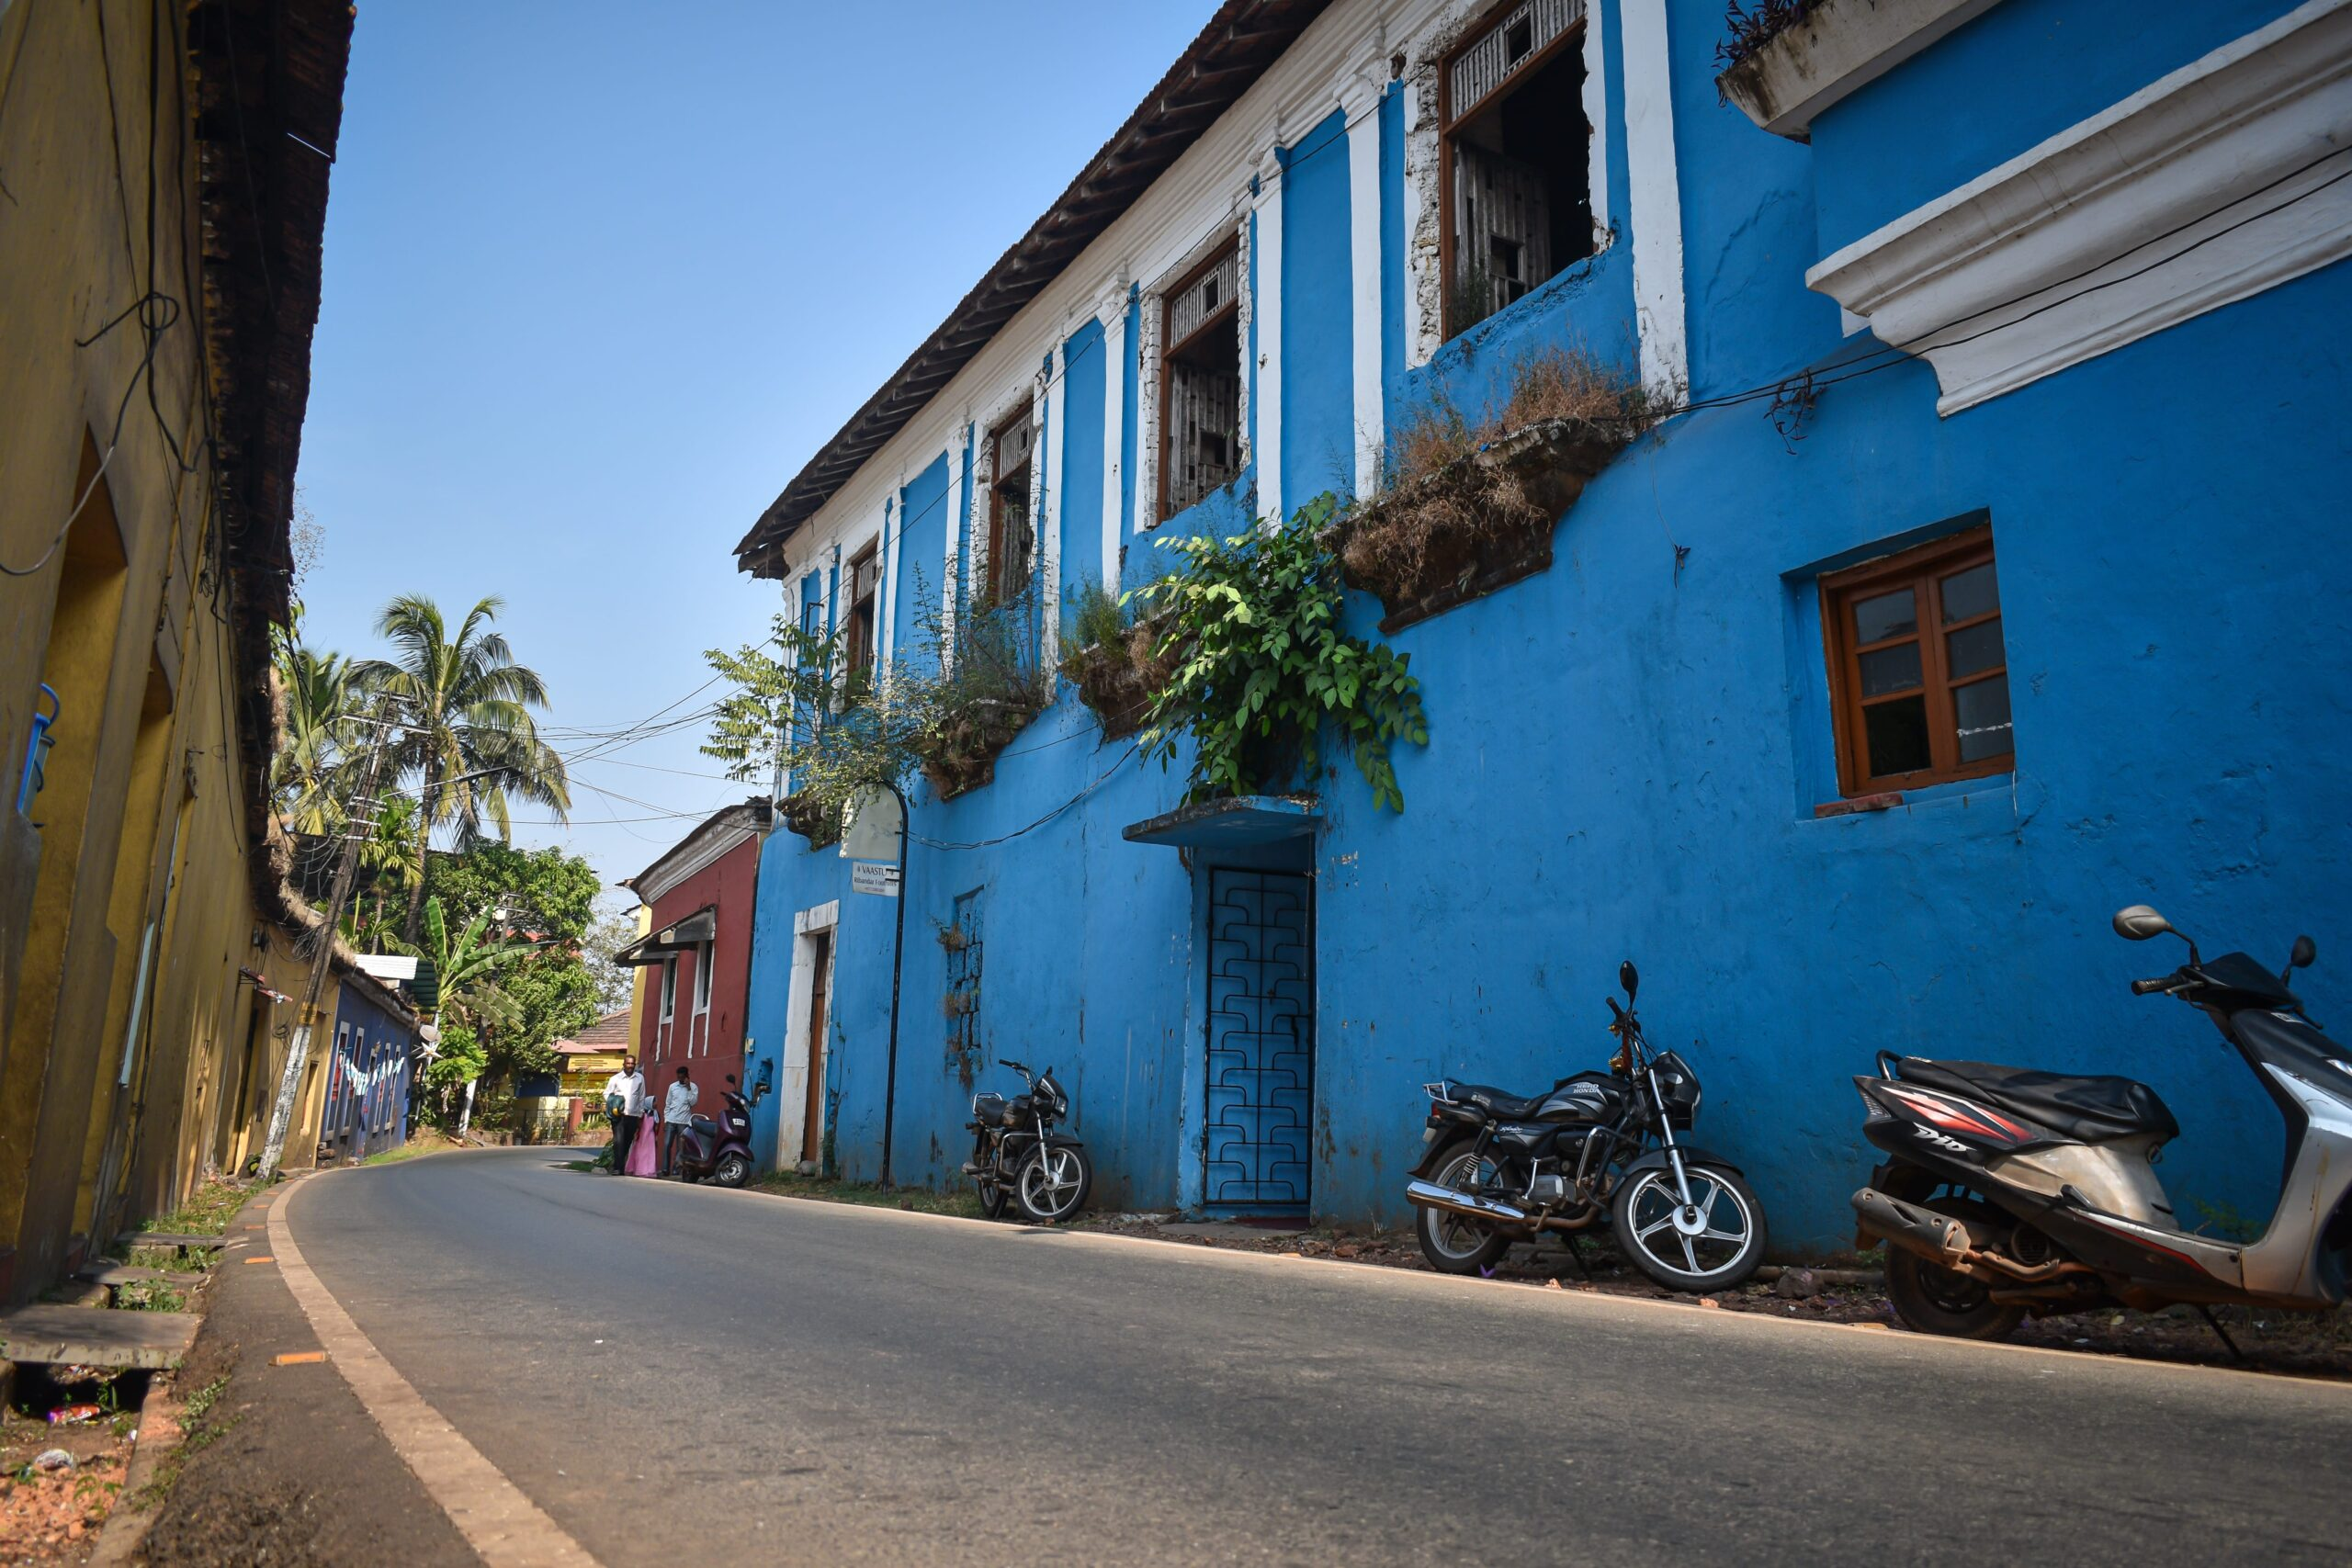 Streets of Old Goa surrounded by colorful buildings